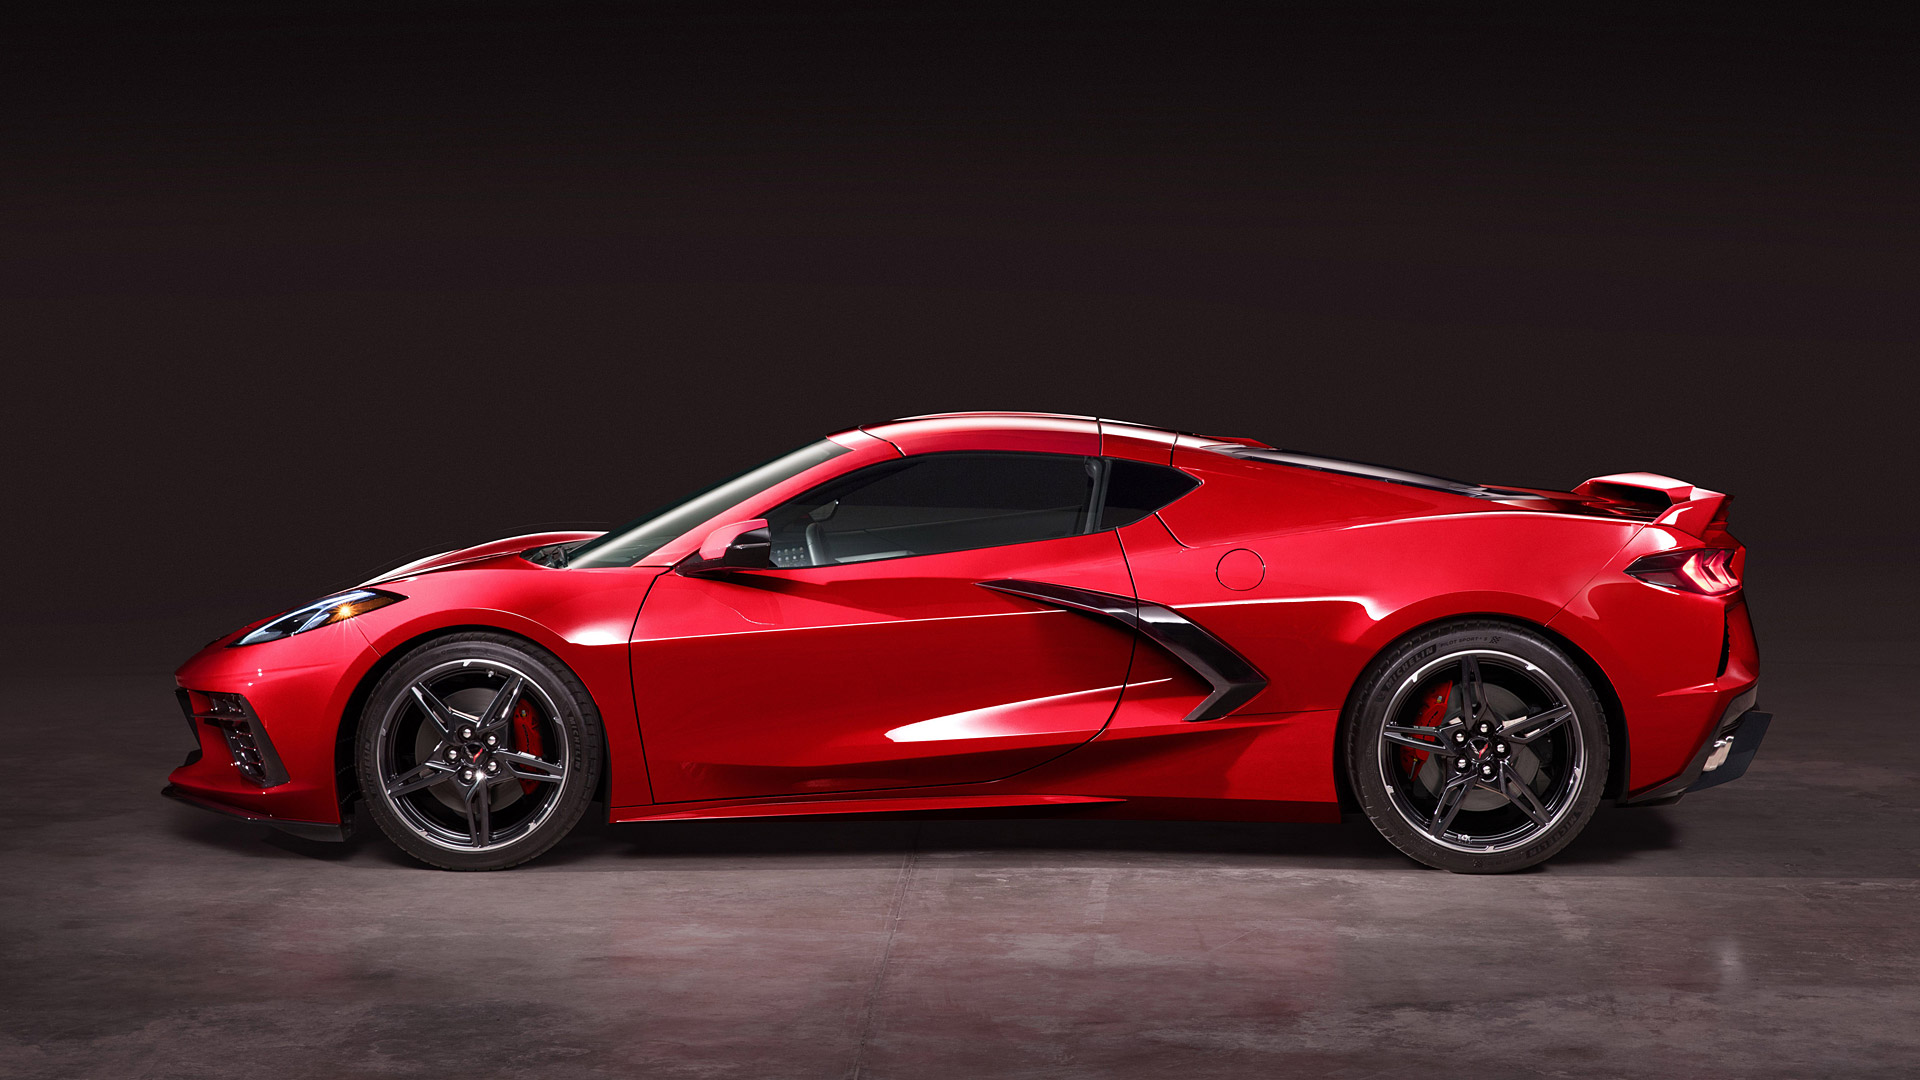 2020 Chevrolet Corvette Stingray Wallpapers HD Images   WSupercars 1920x1080